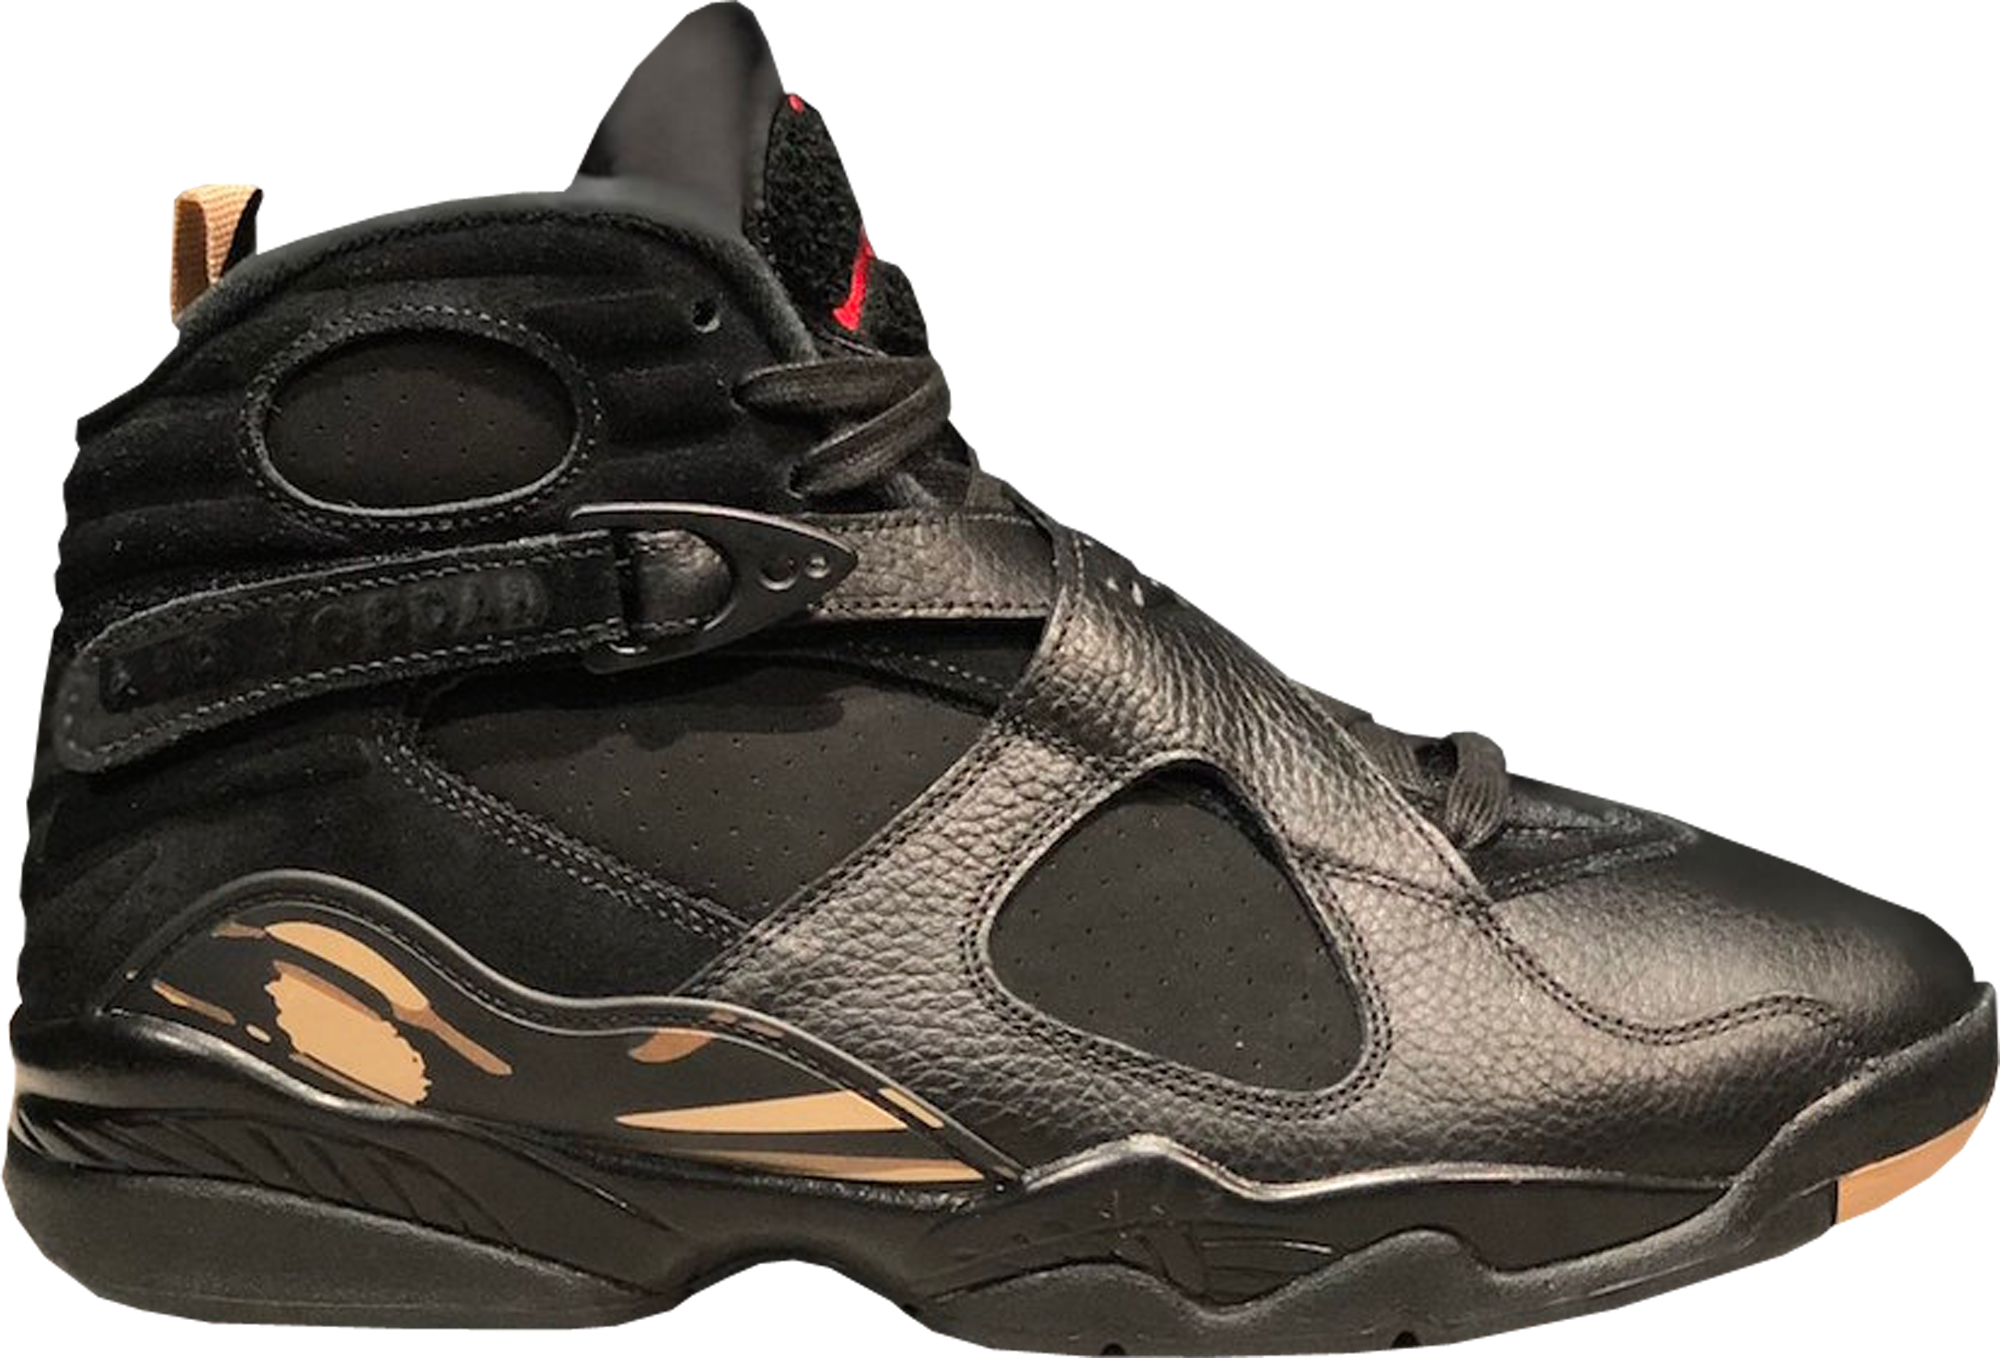 air jordan viii ovo stock x shoes